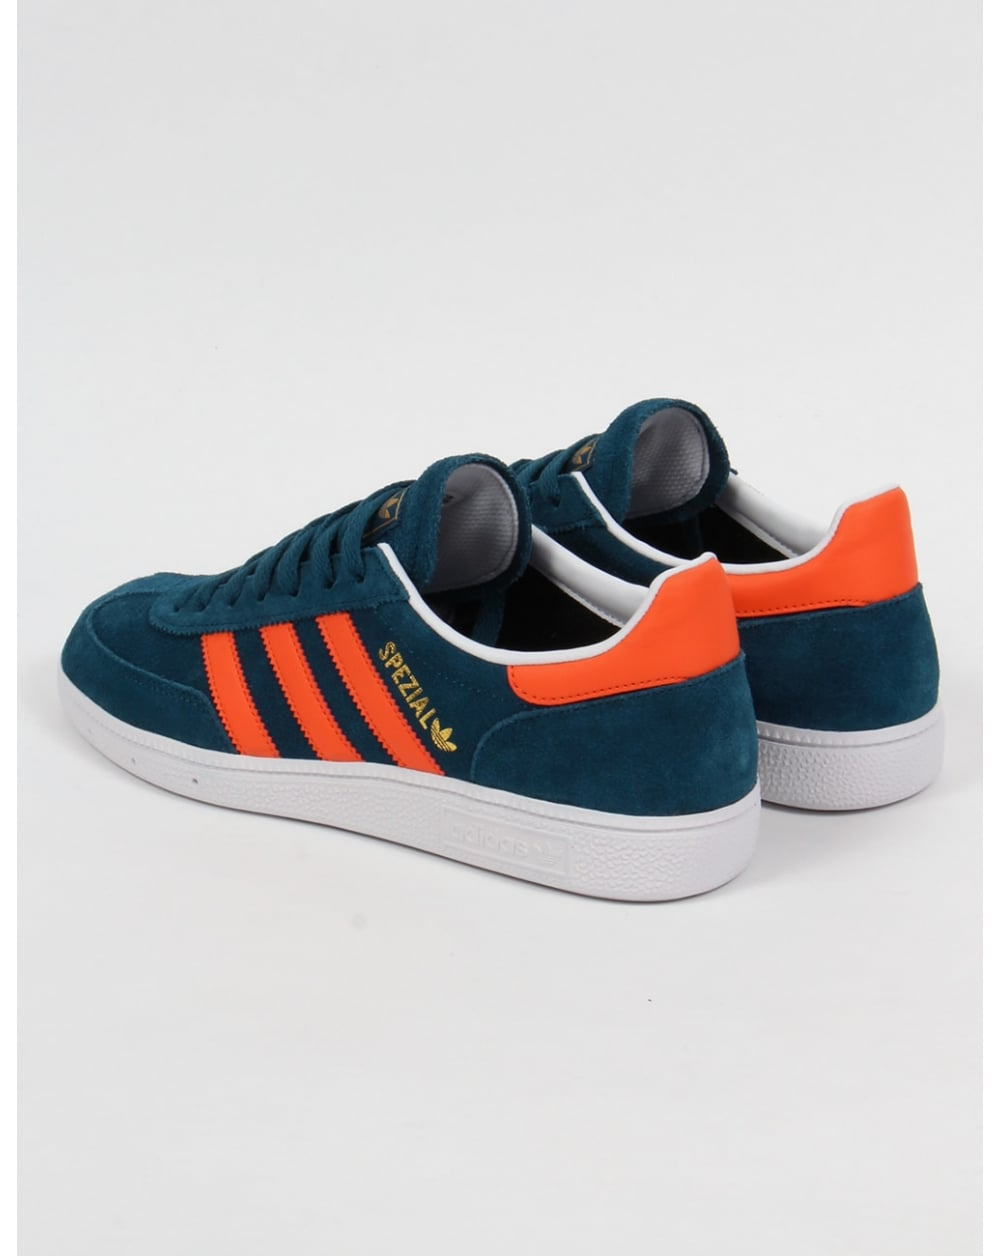 Adidas Orange Blue Shoes